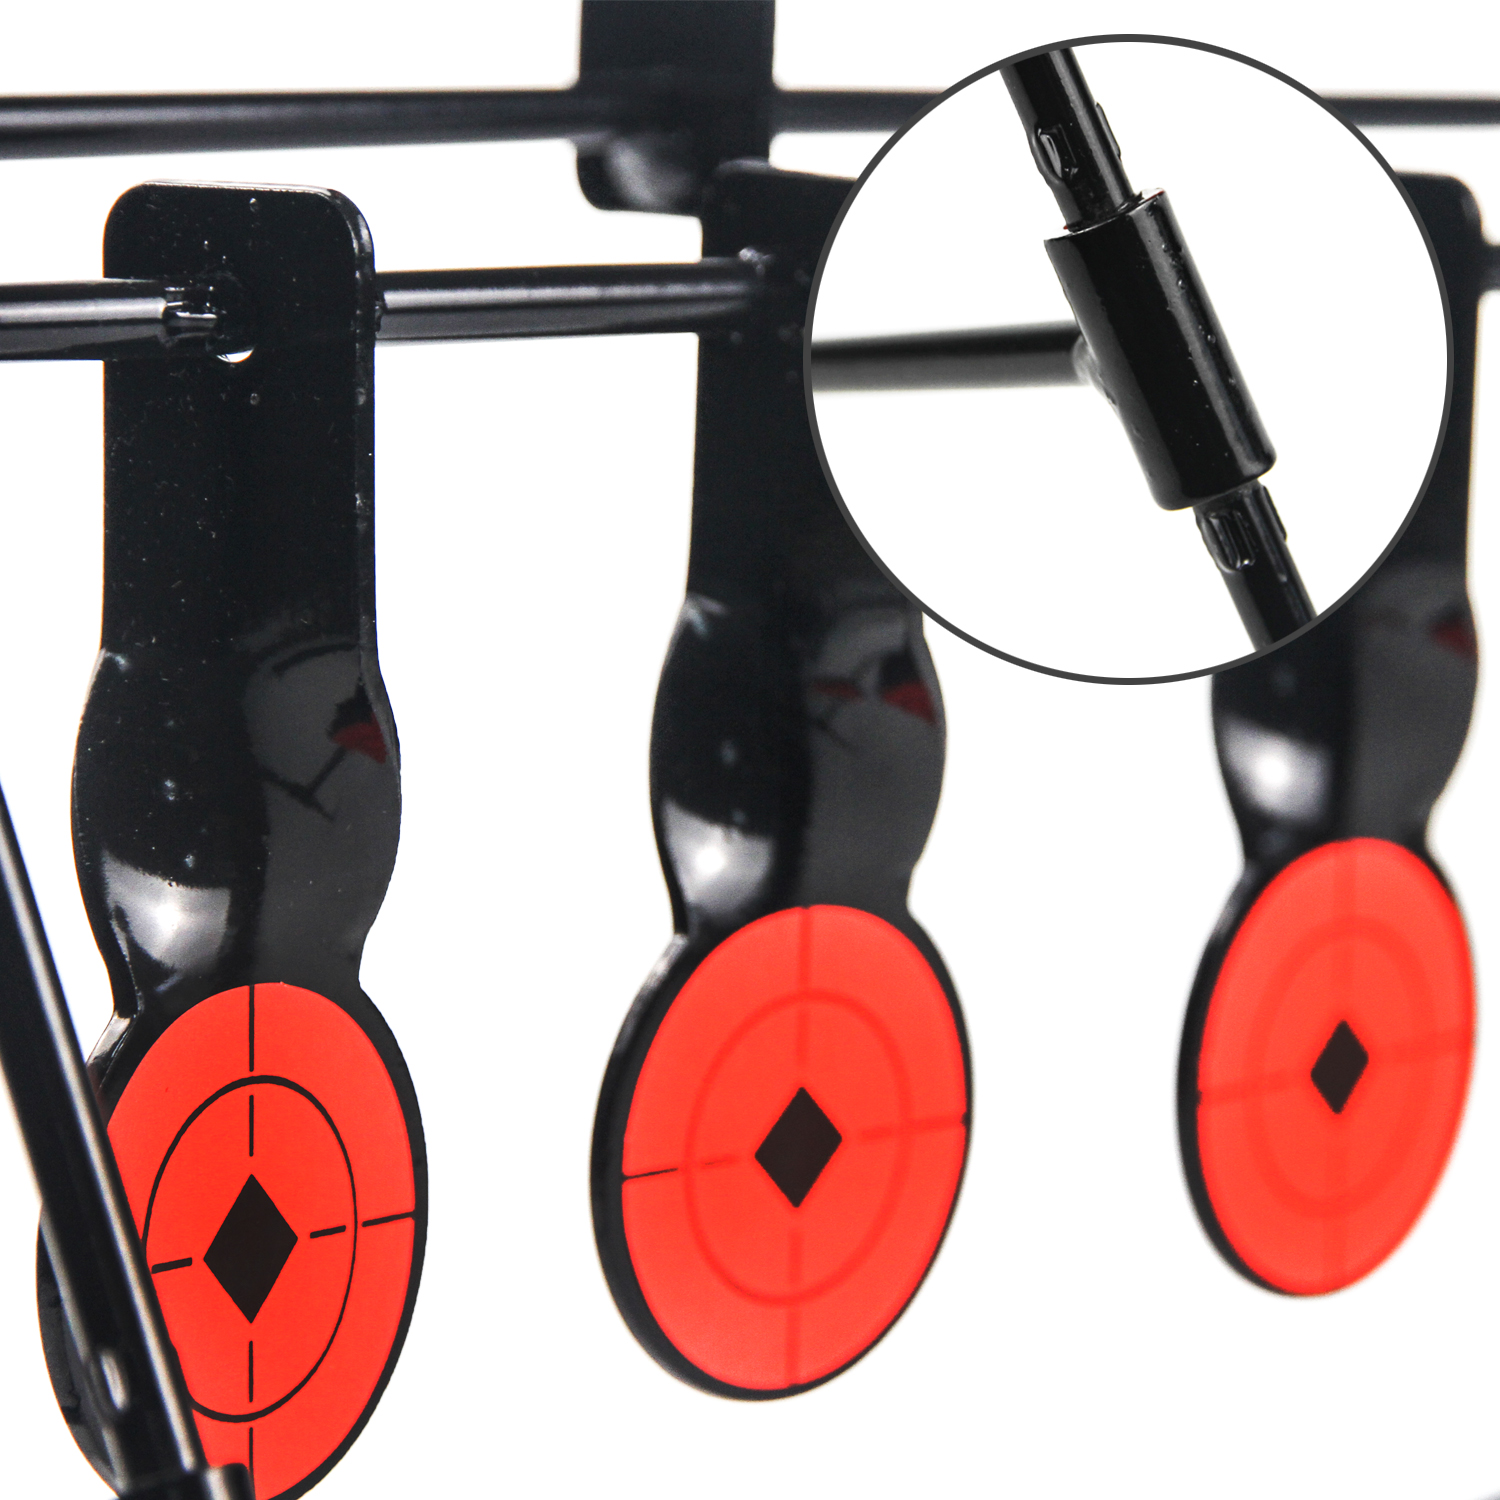 Shooting Steel Auto Reset Targets Portable for Air BB and Pellet .177cal Guns